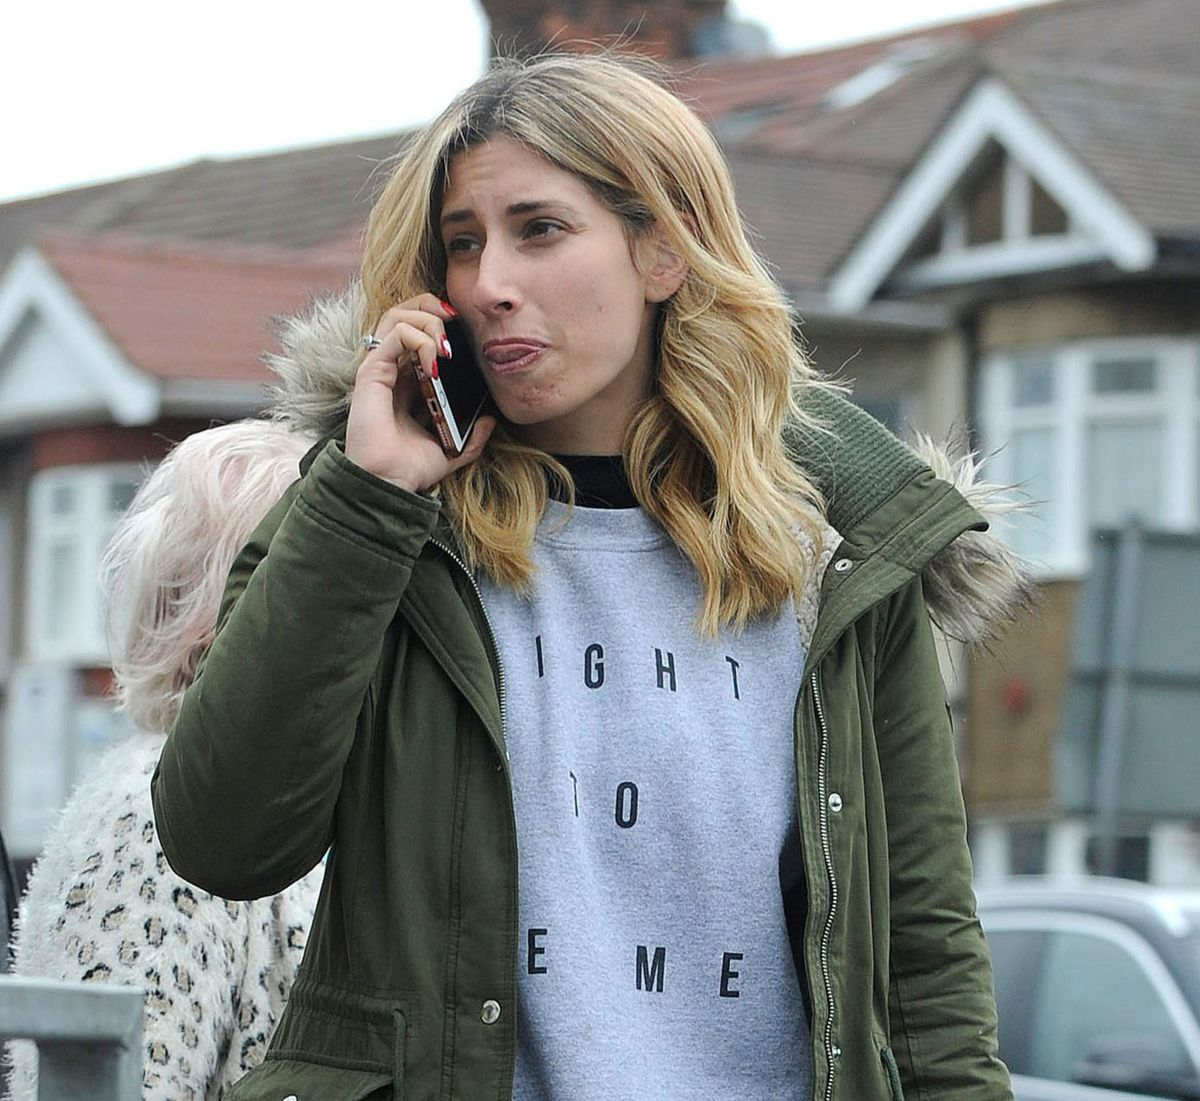 stacey solomon - photo #10